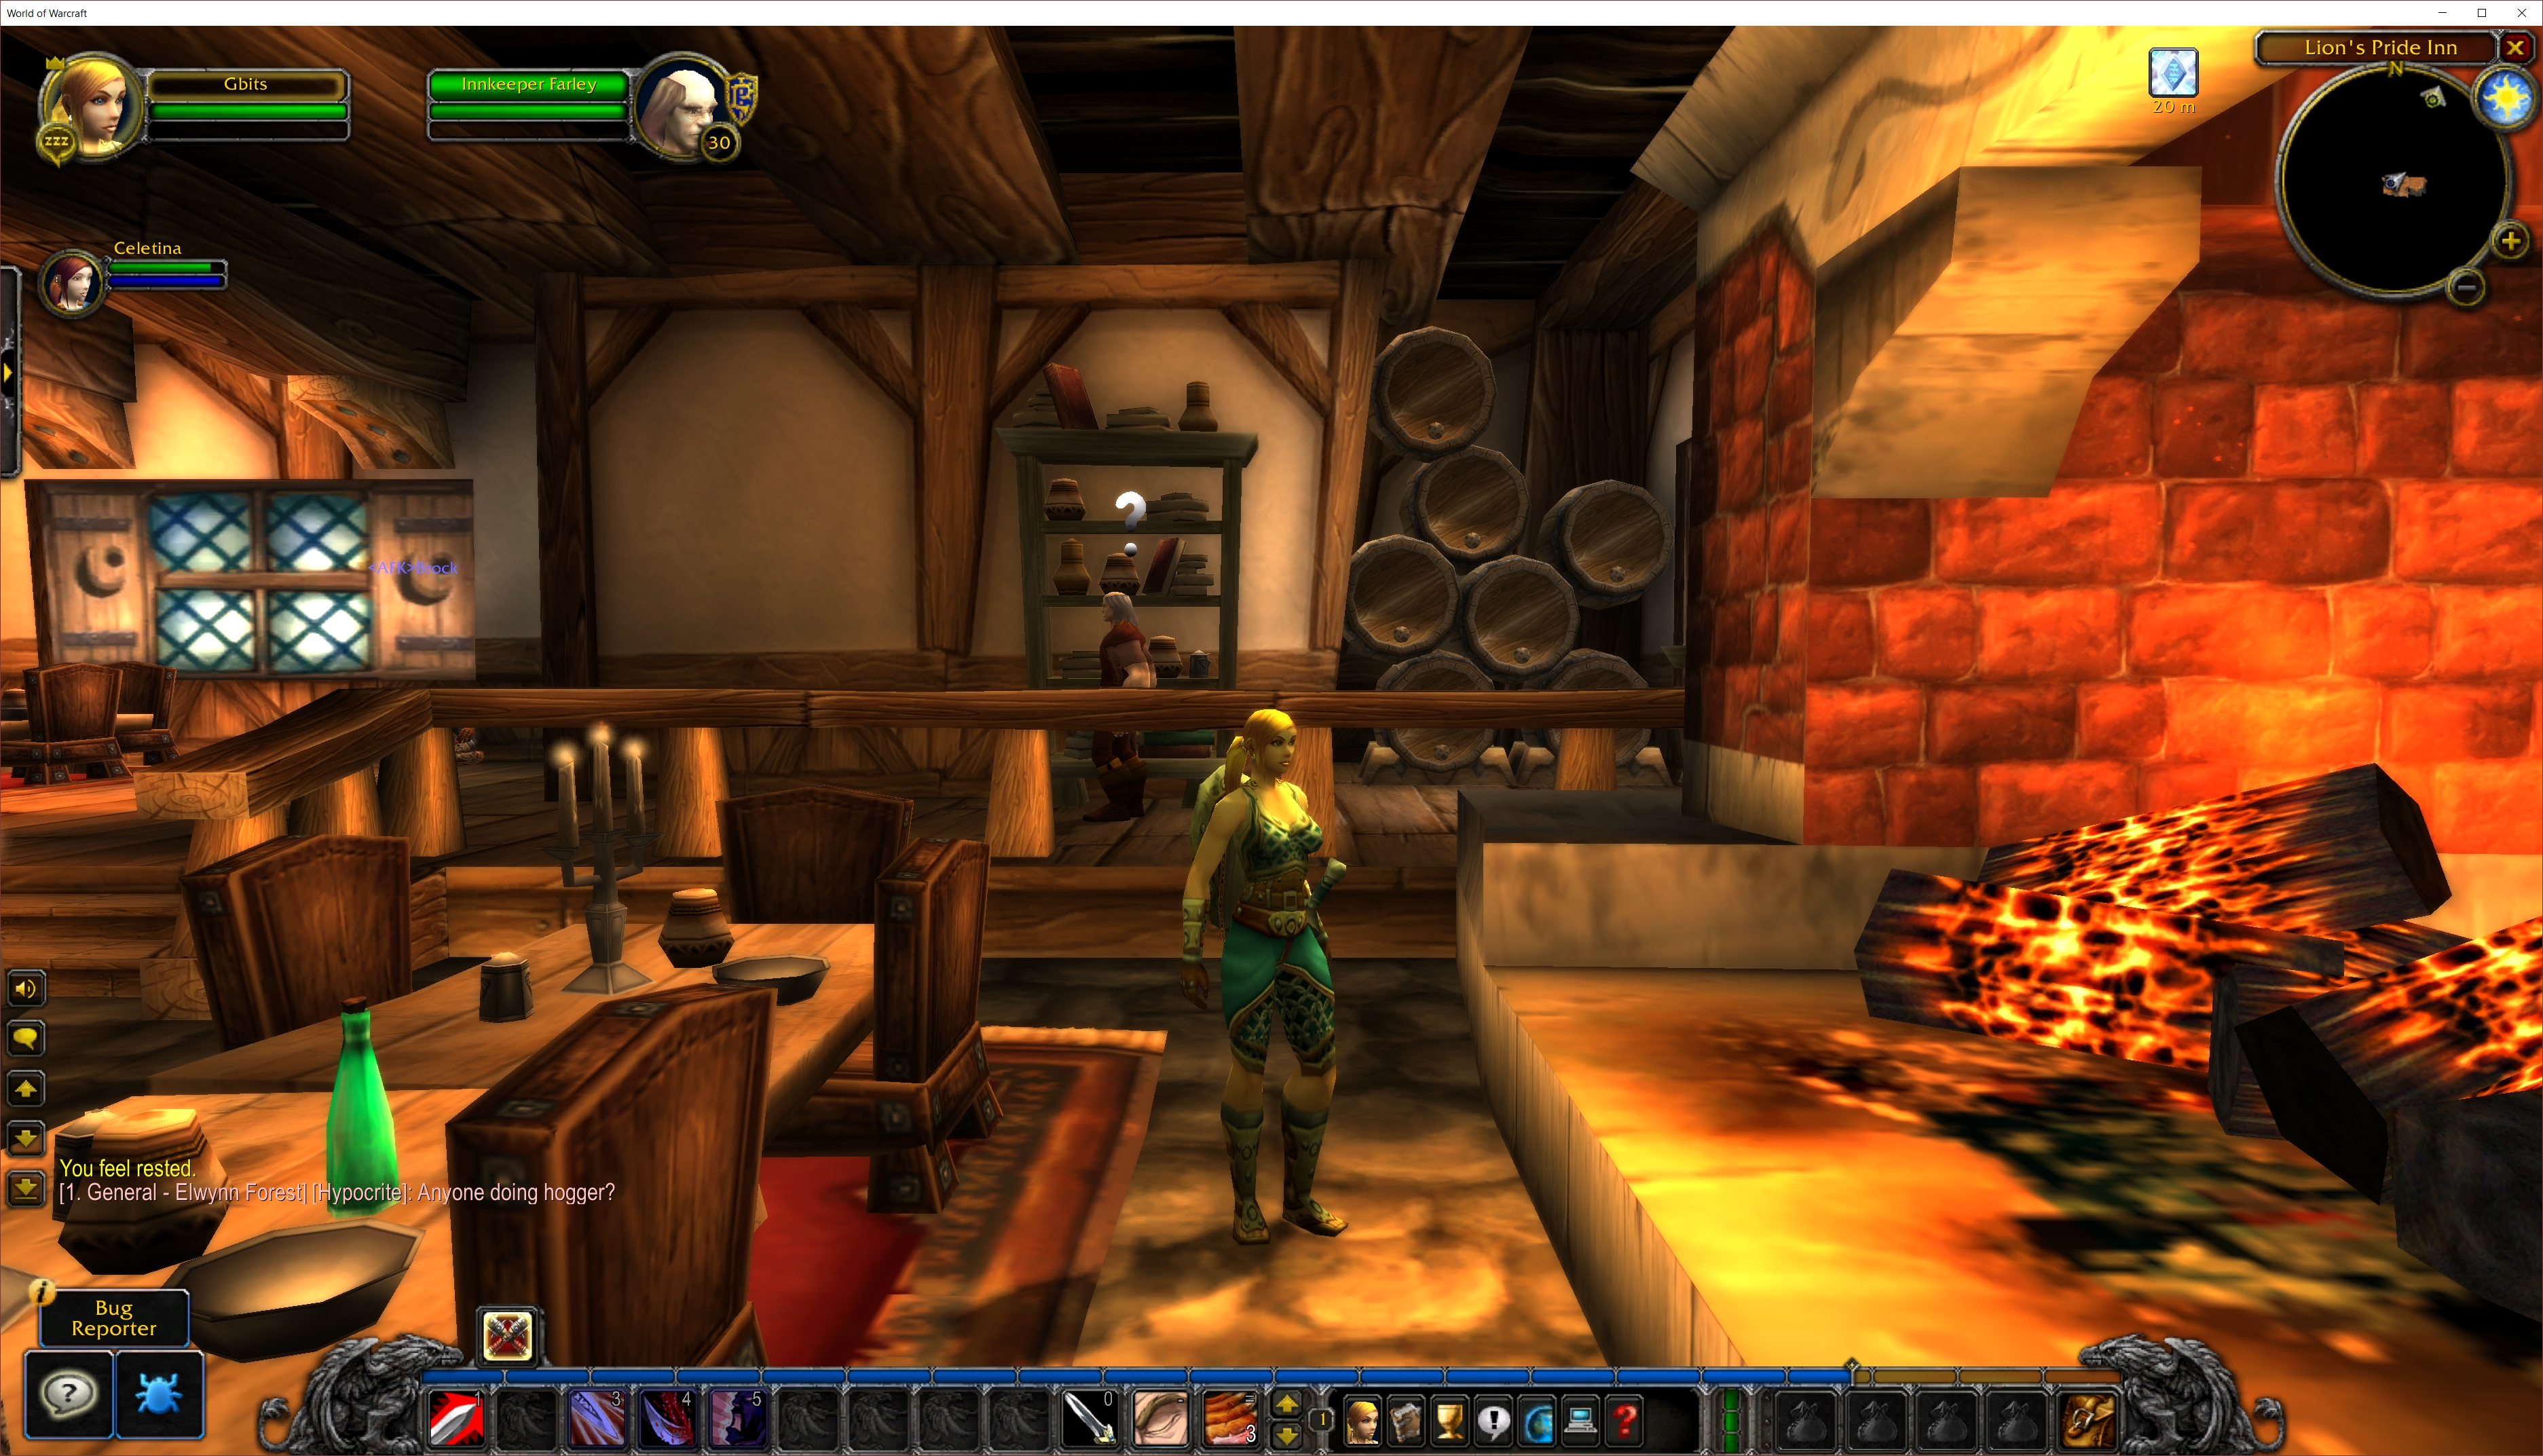 Example of gameplay from World of Warcraft.